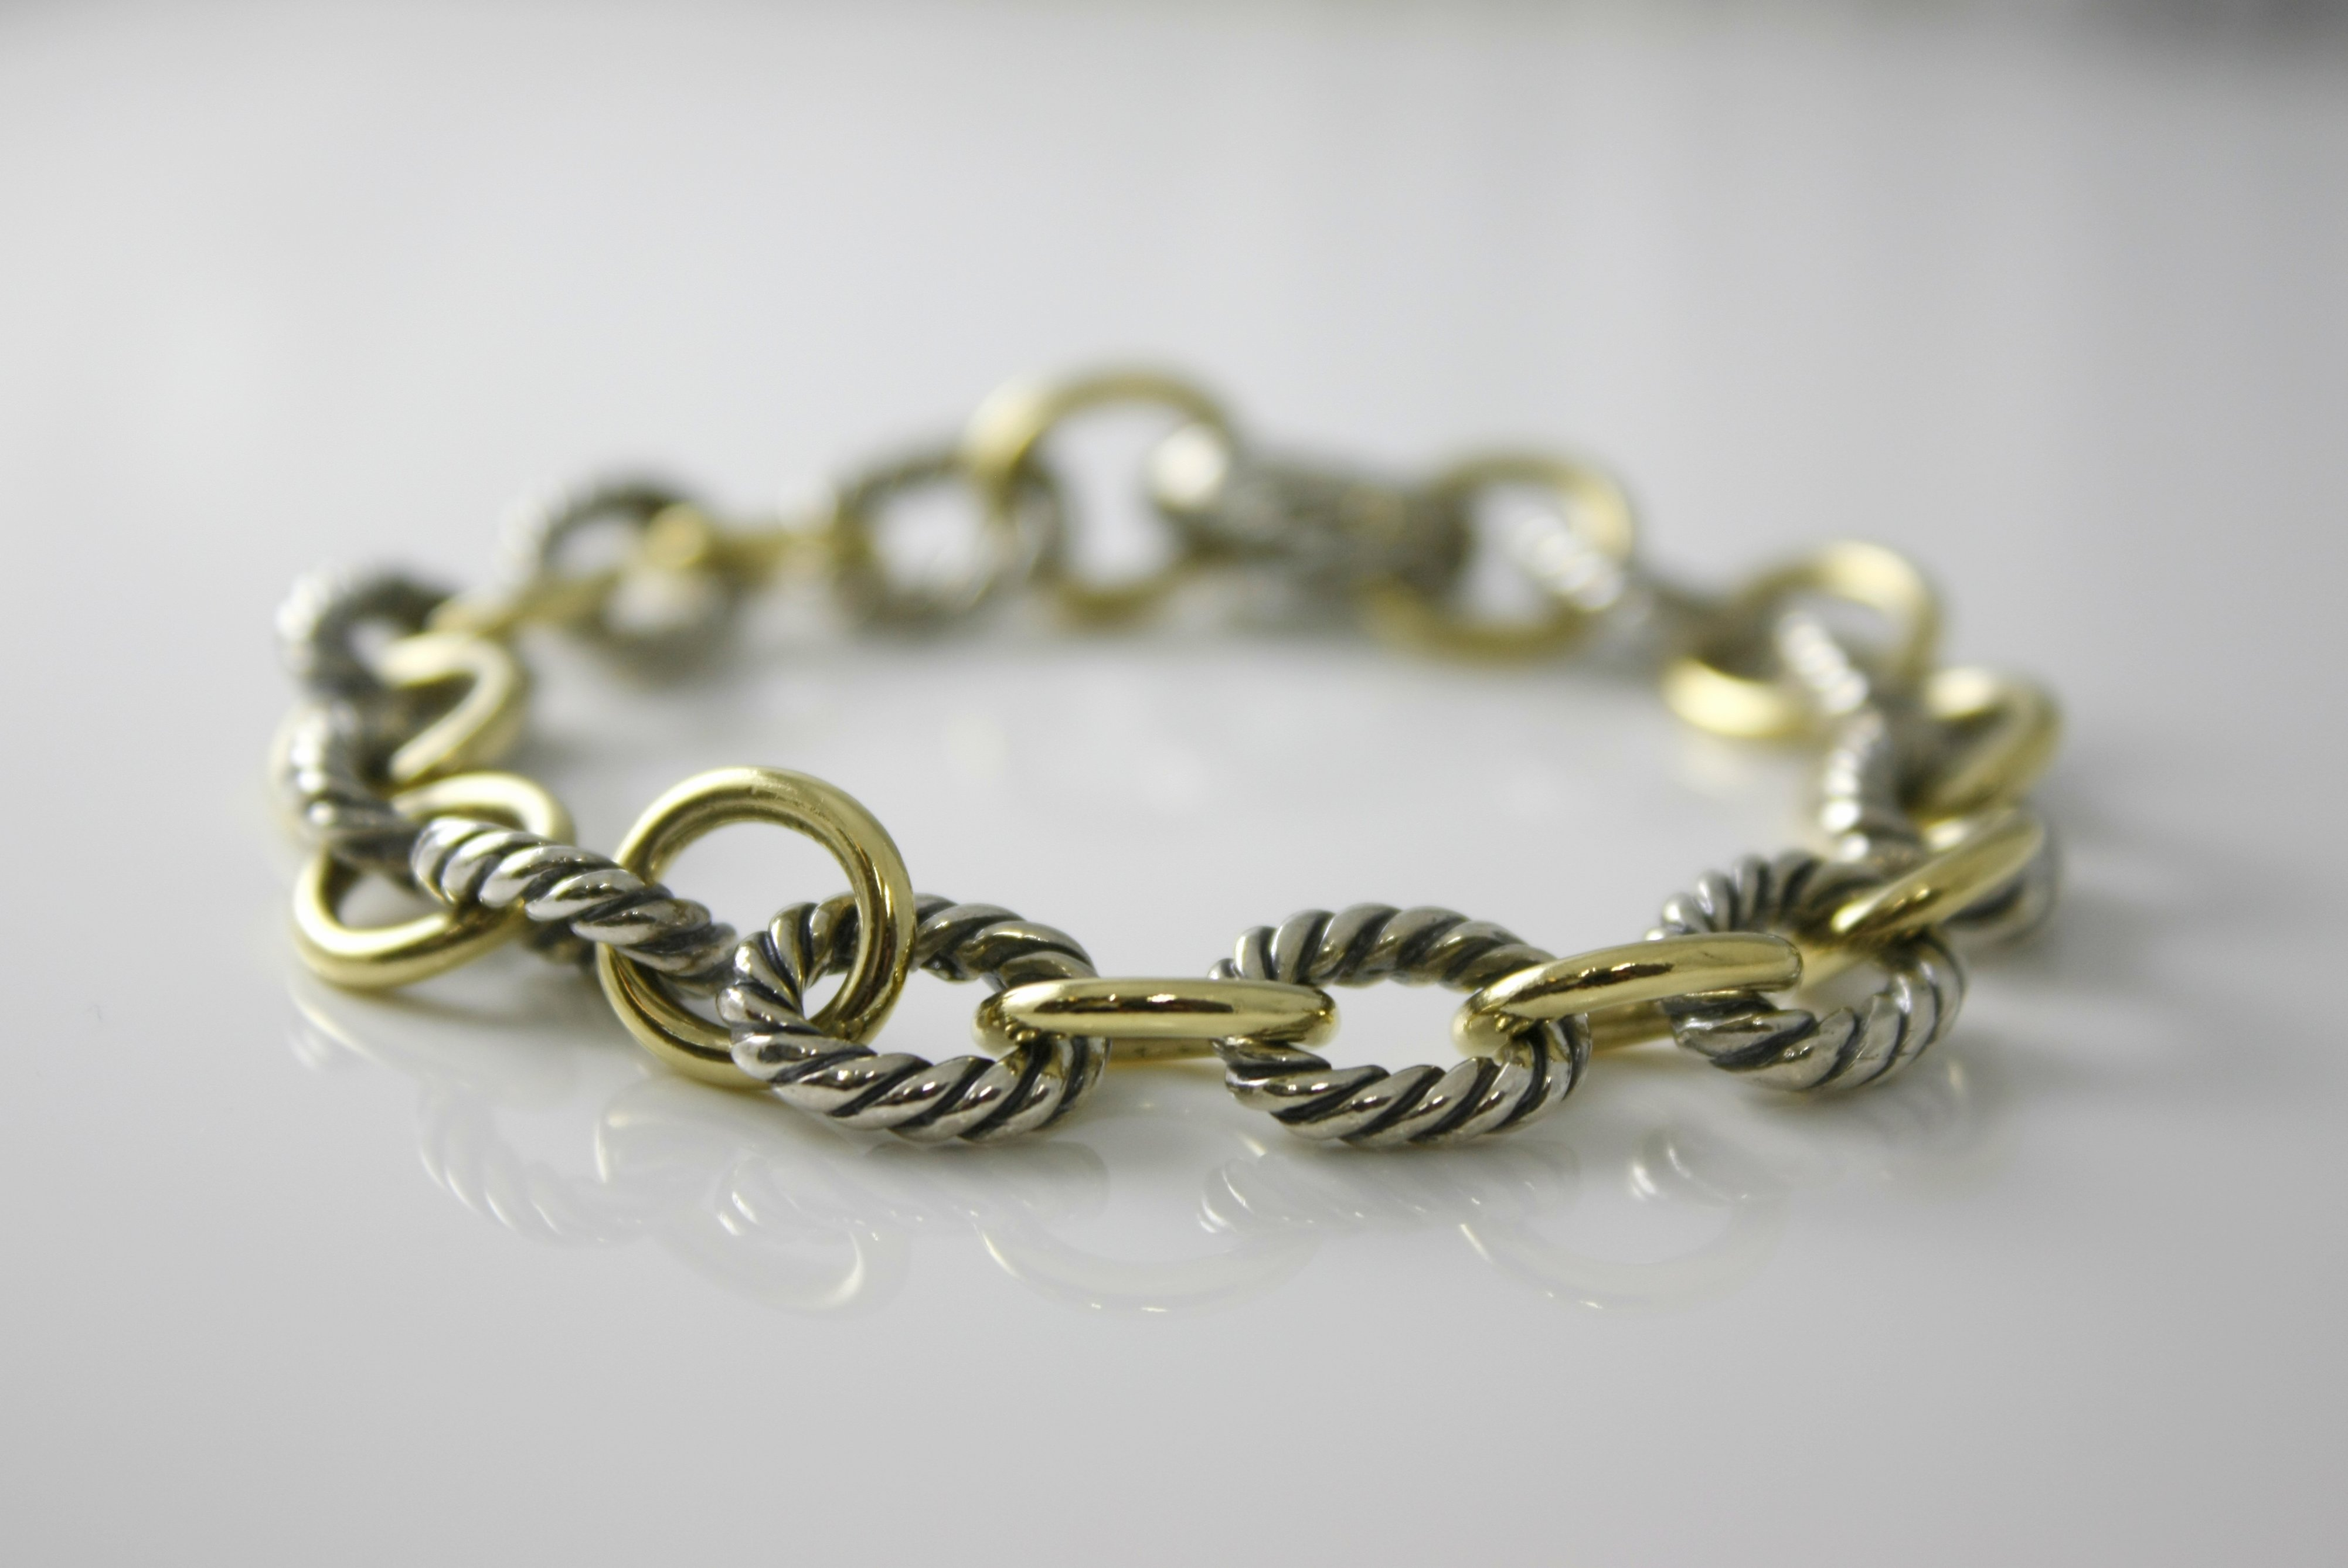 David Yurman Oval Link Bracelet - $950